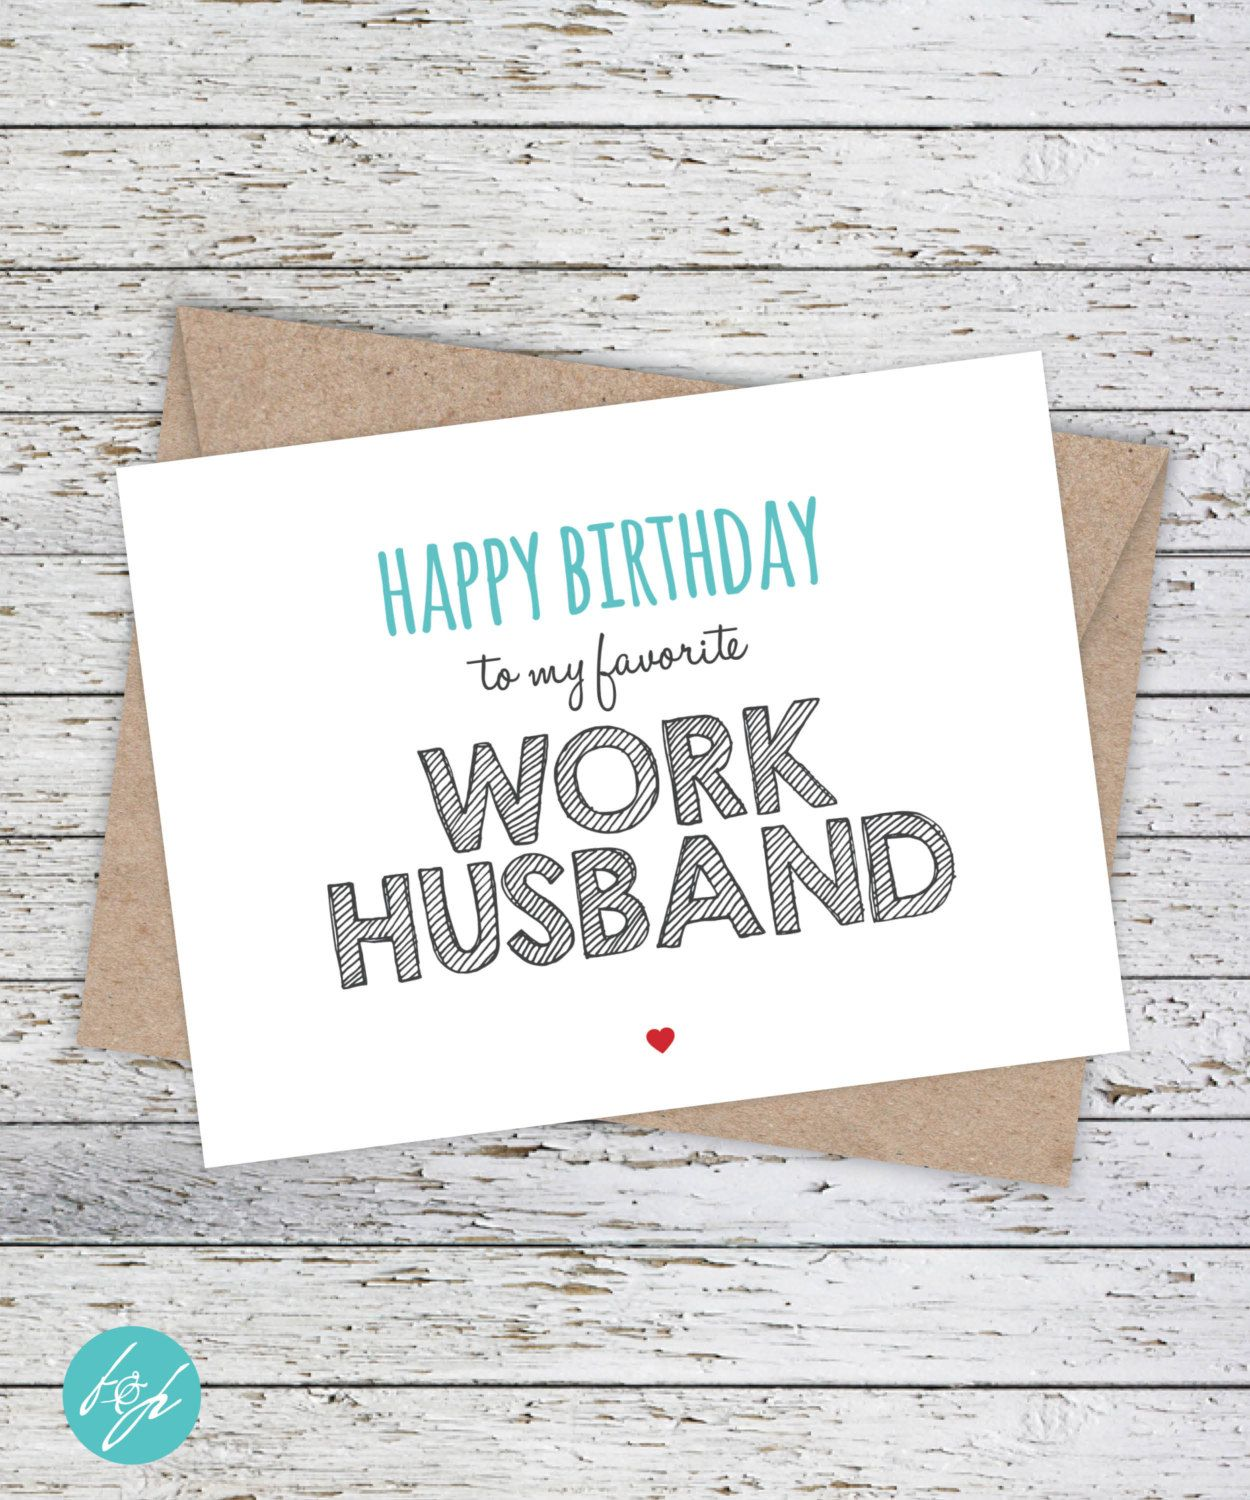 Funny coworker birthday card funny birthday card snarky birthday funny coworker birthday card happy birthday to my favorite work husband by flairandpaper on etsy bookmarktalkfo Image collections